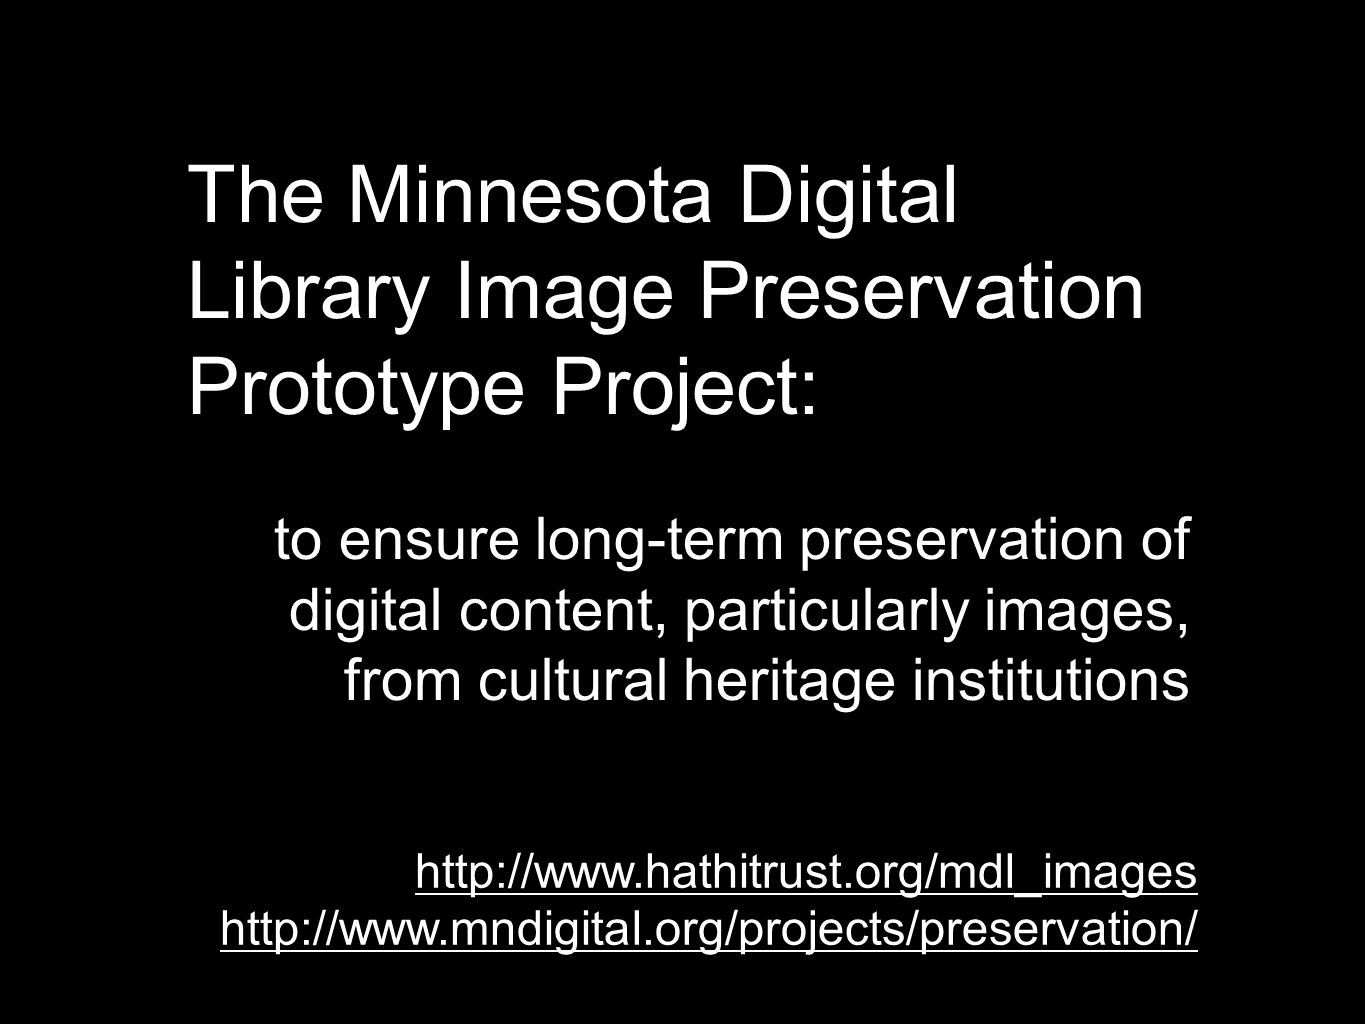 The Minnesota Digital Library Image Preservation Prototype Project: